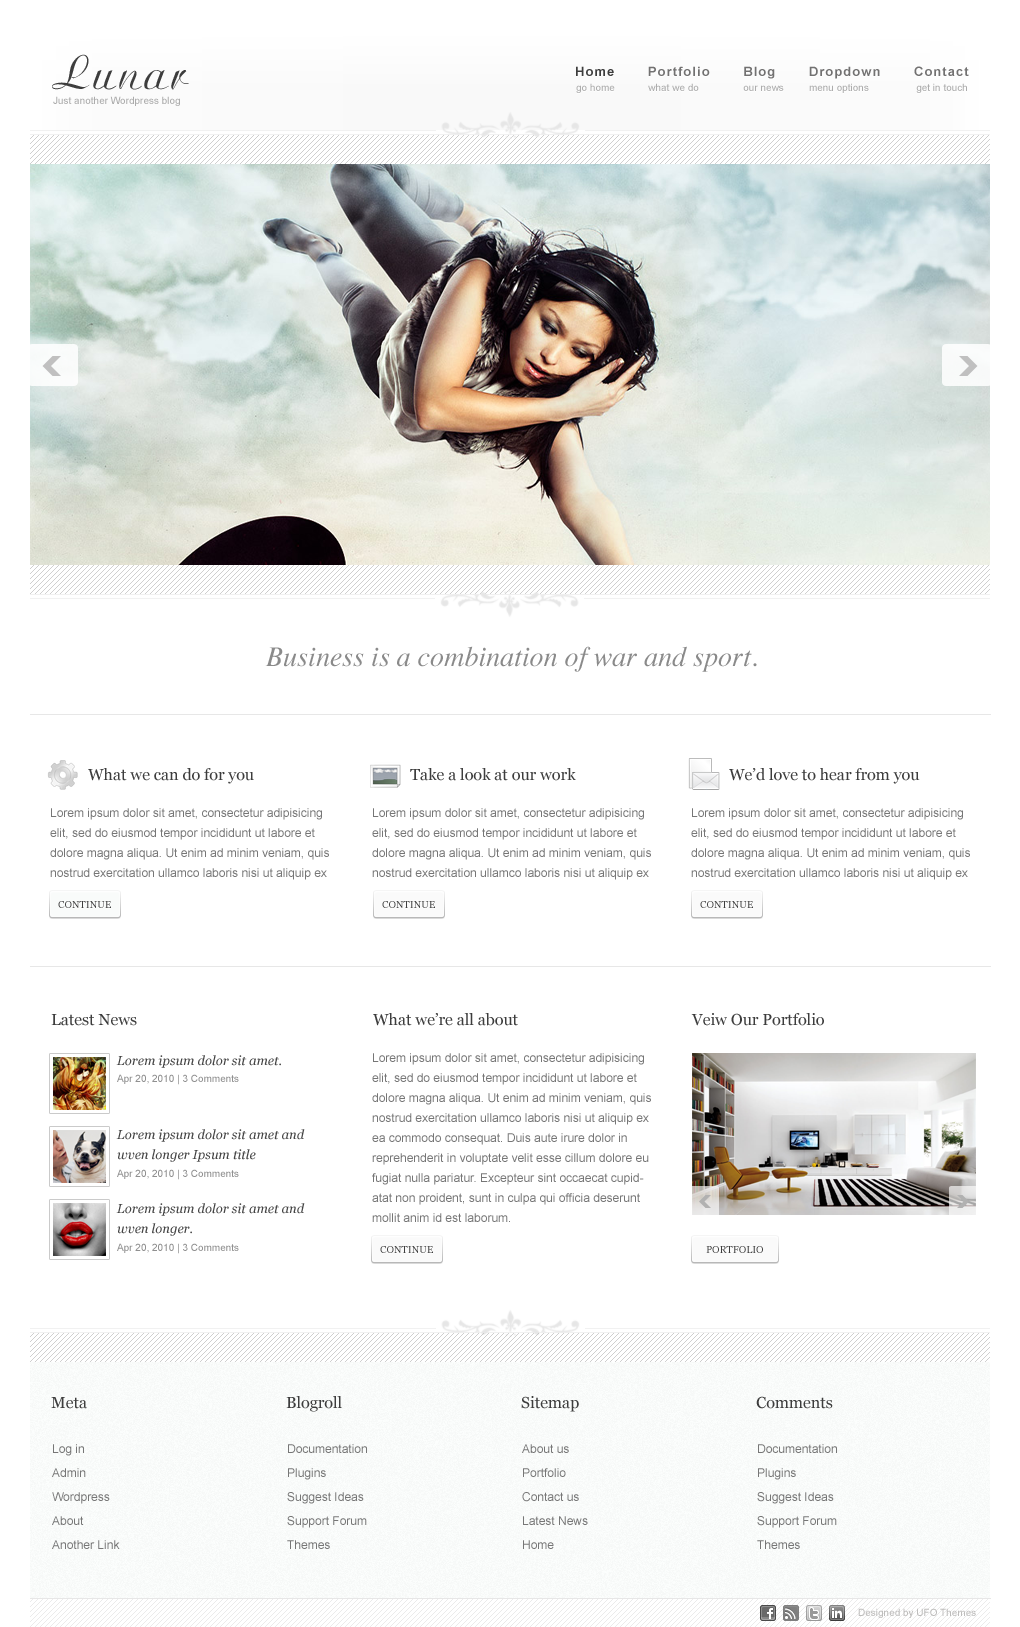 pnews wordpress theme lunar